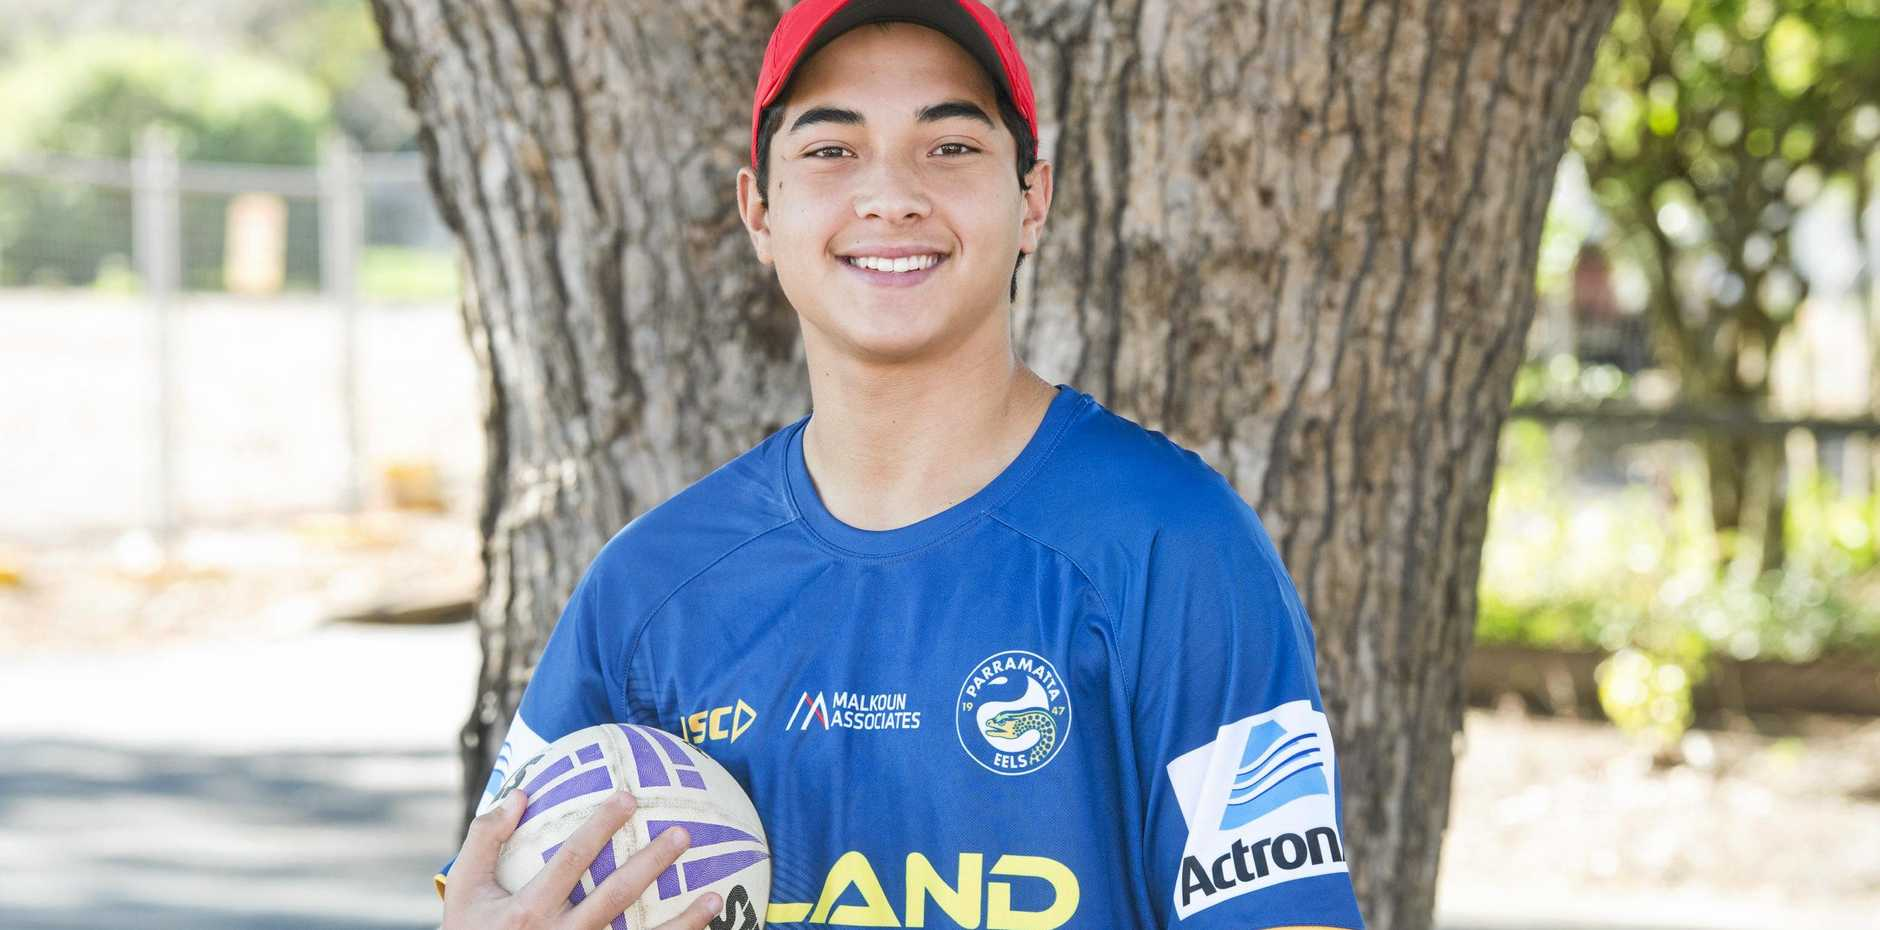 THE REAL DEAL: Toowoomba Valleys player Kooper Diment has signed a four-year contract with the Parramatta Eels after impressing in Darling Downs school rugby league.